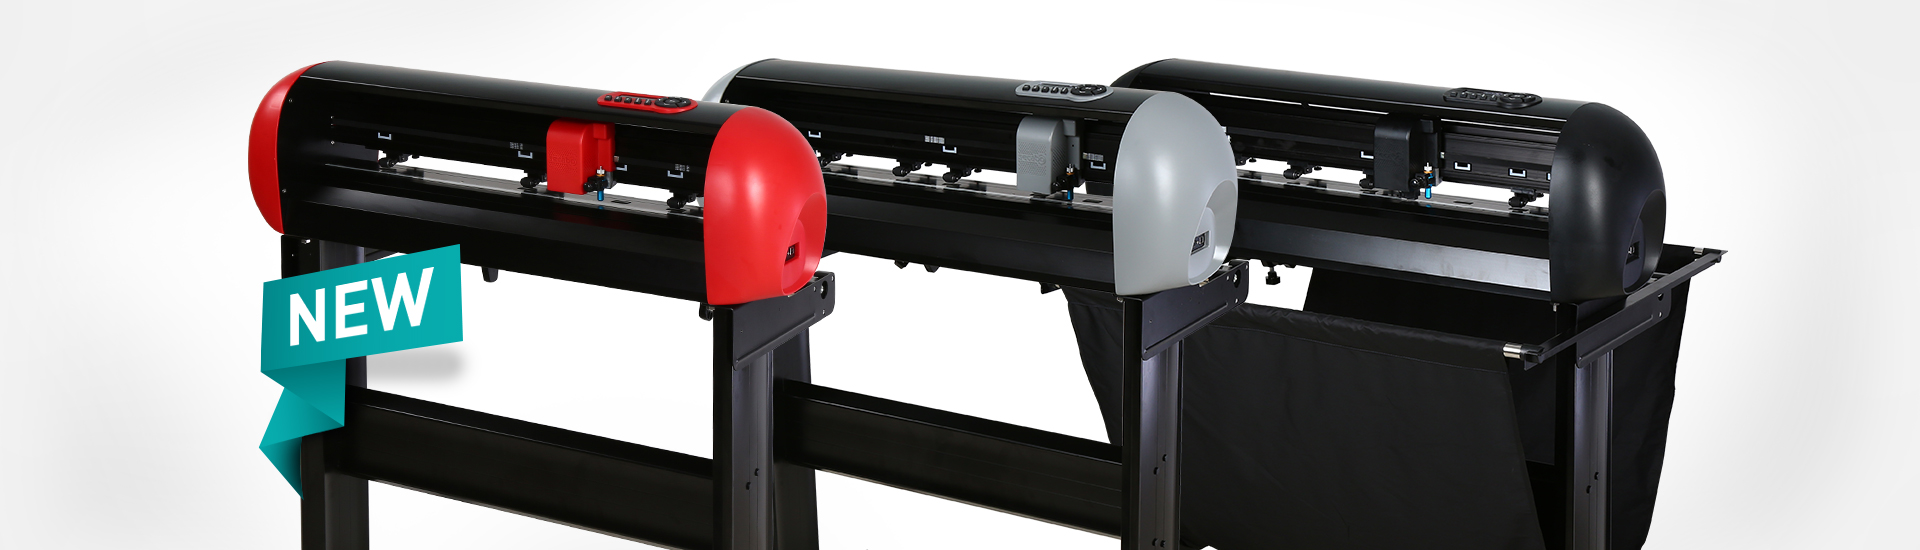 New Secabo vinyl cutter series